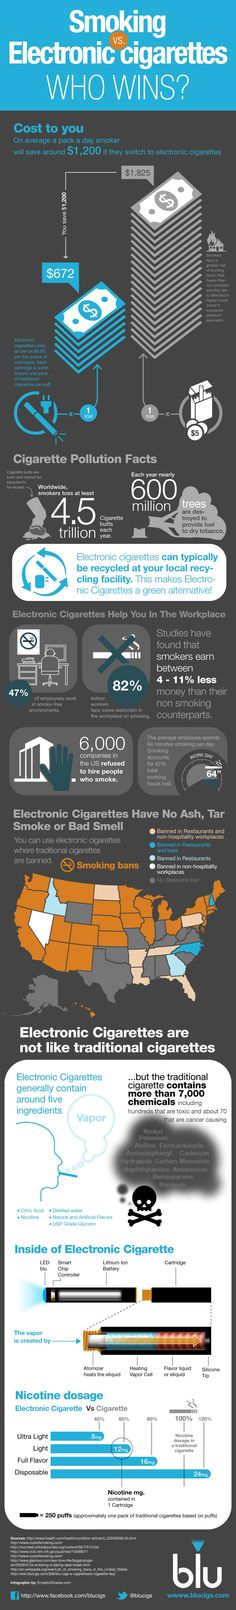 """Electronic Cigarettes are """"Hot""""- but are they better than smoking?"""